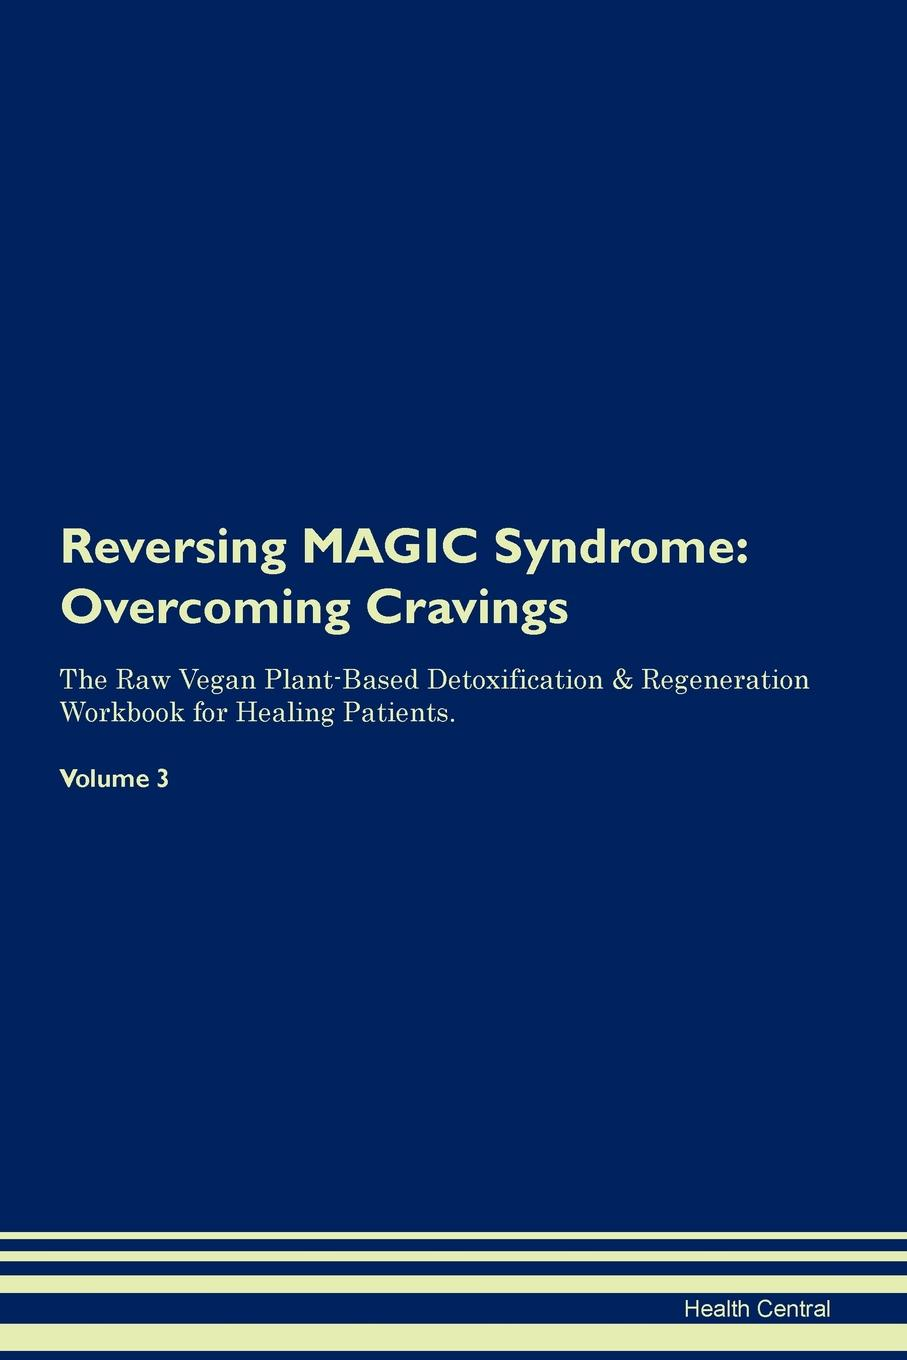 Health Central Reversing MAGIC Syndrome. Overcoming Cravings The Raw Vegan Plant-Based Detoxification . Regeneration Workbook for Healing Patients. Volume 3